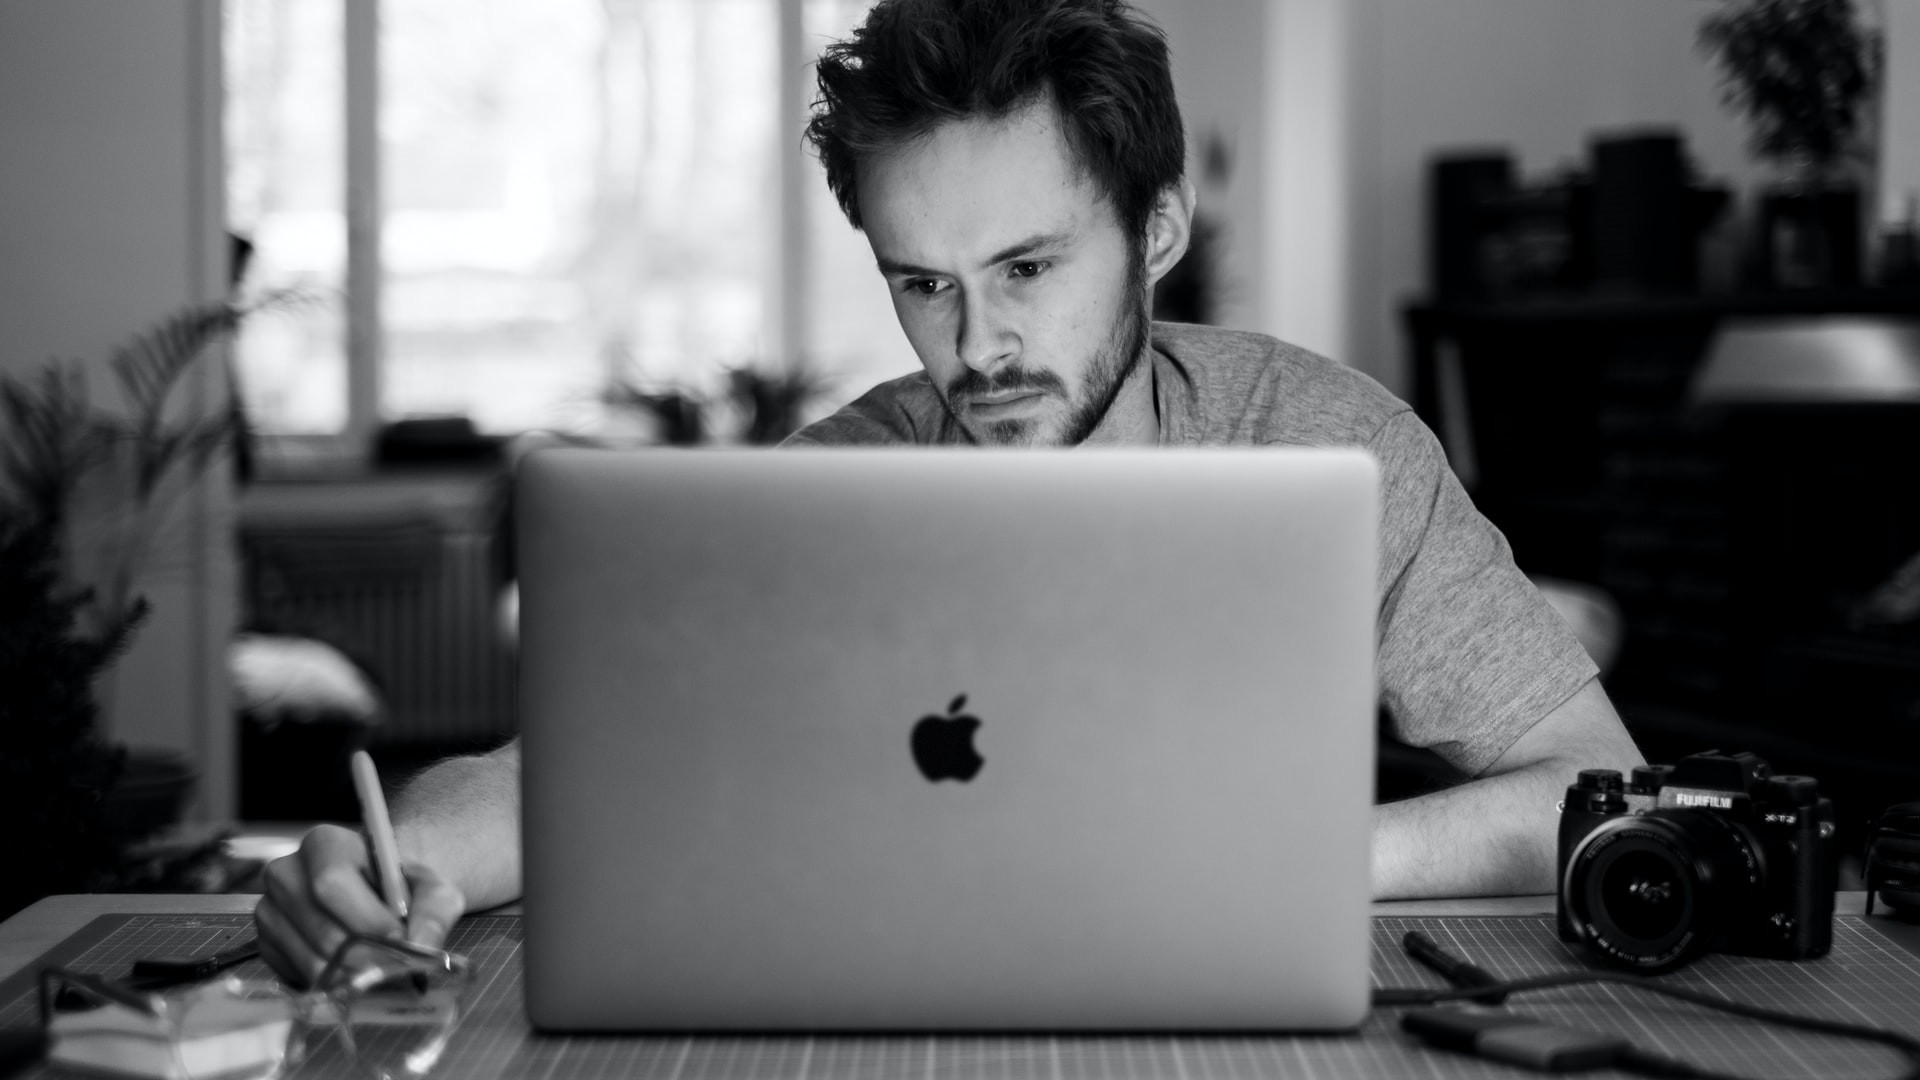 How To Blacklist Customers In Shopify - No Code Required